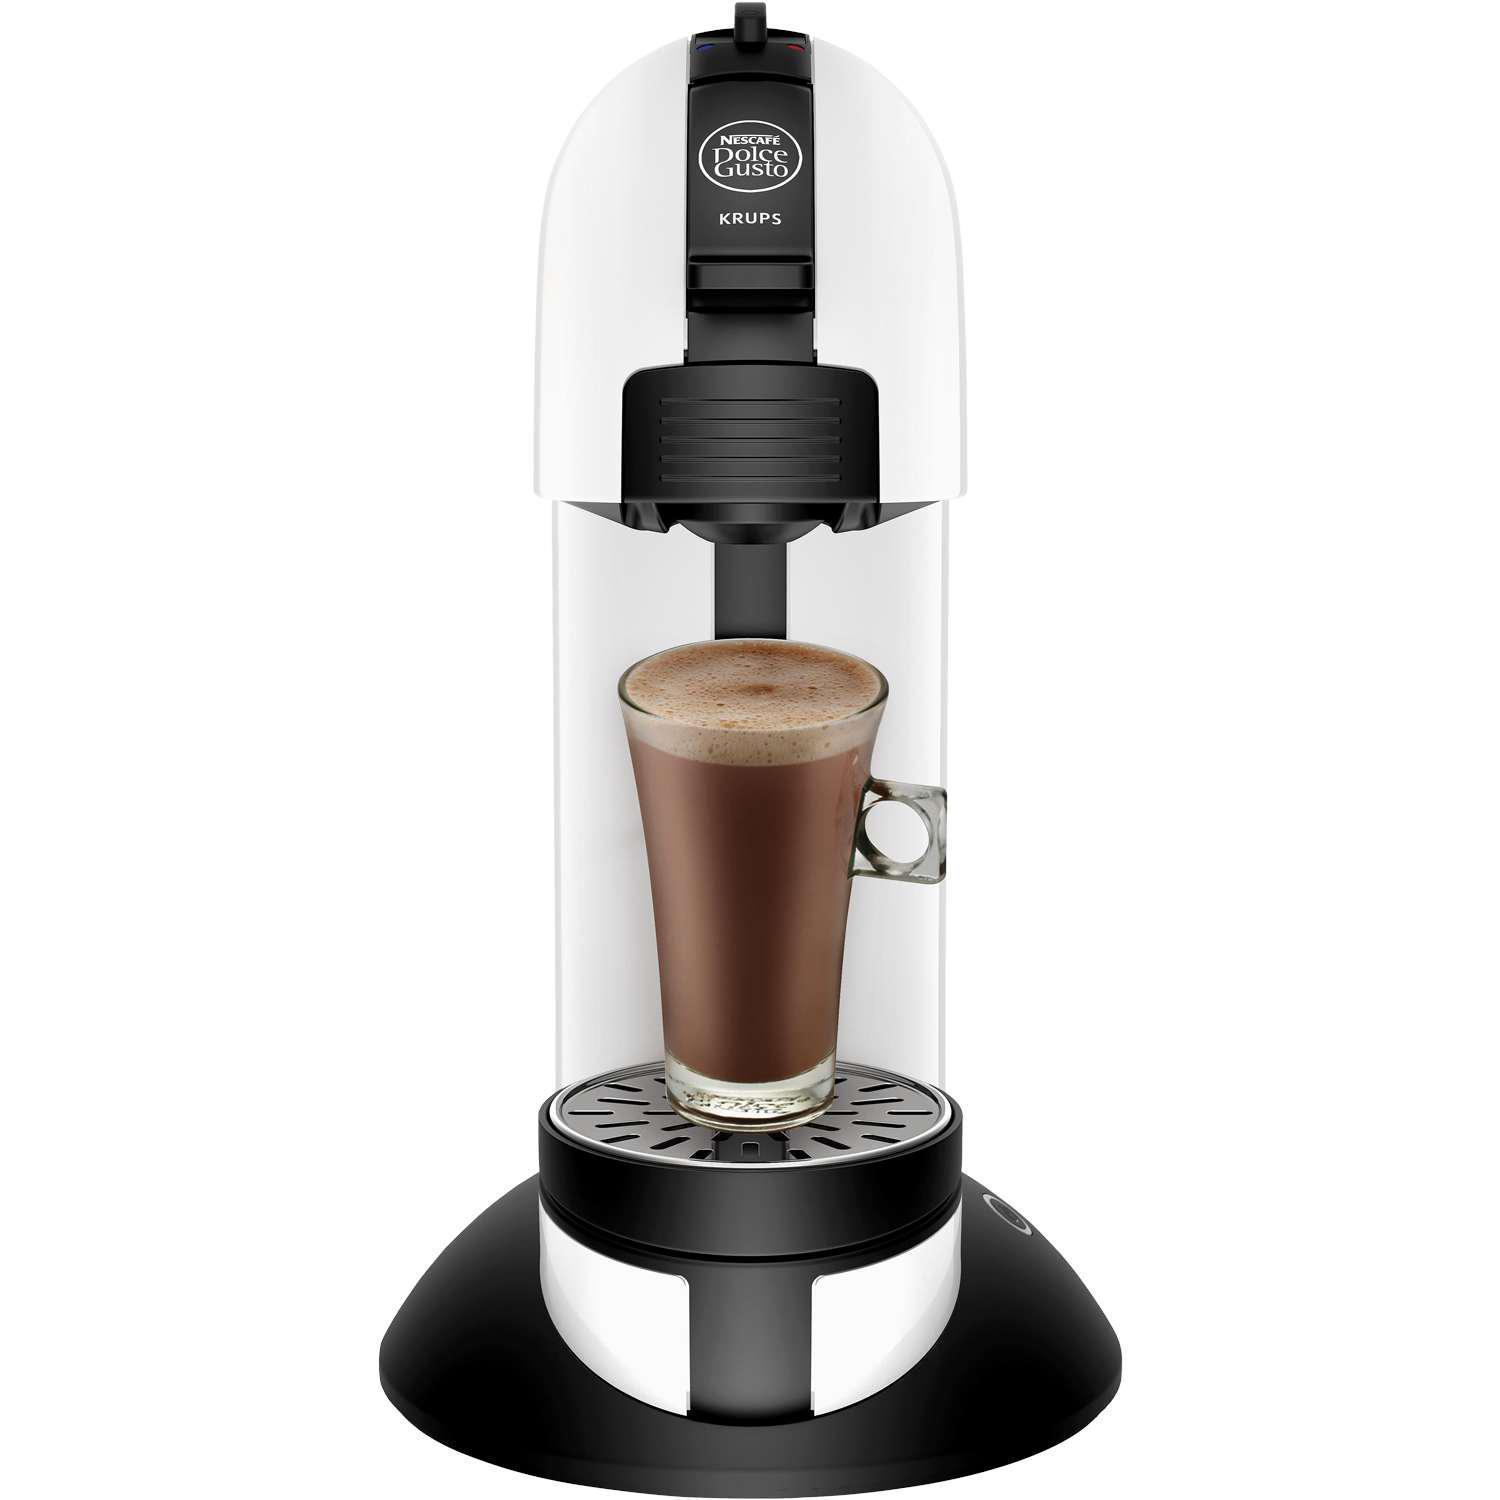 Cafetera Krups Dolce Gusto KP300240